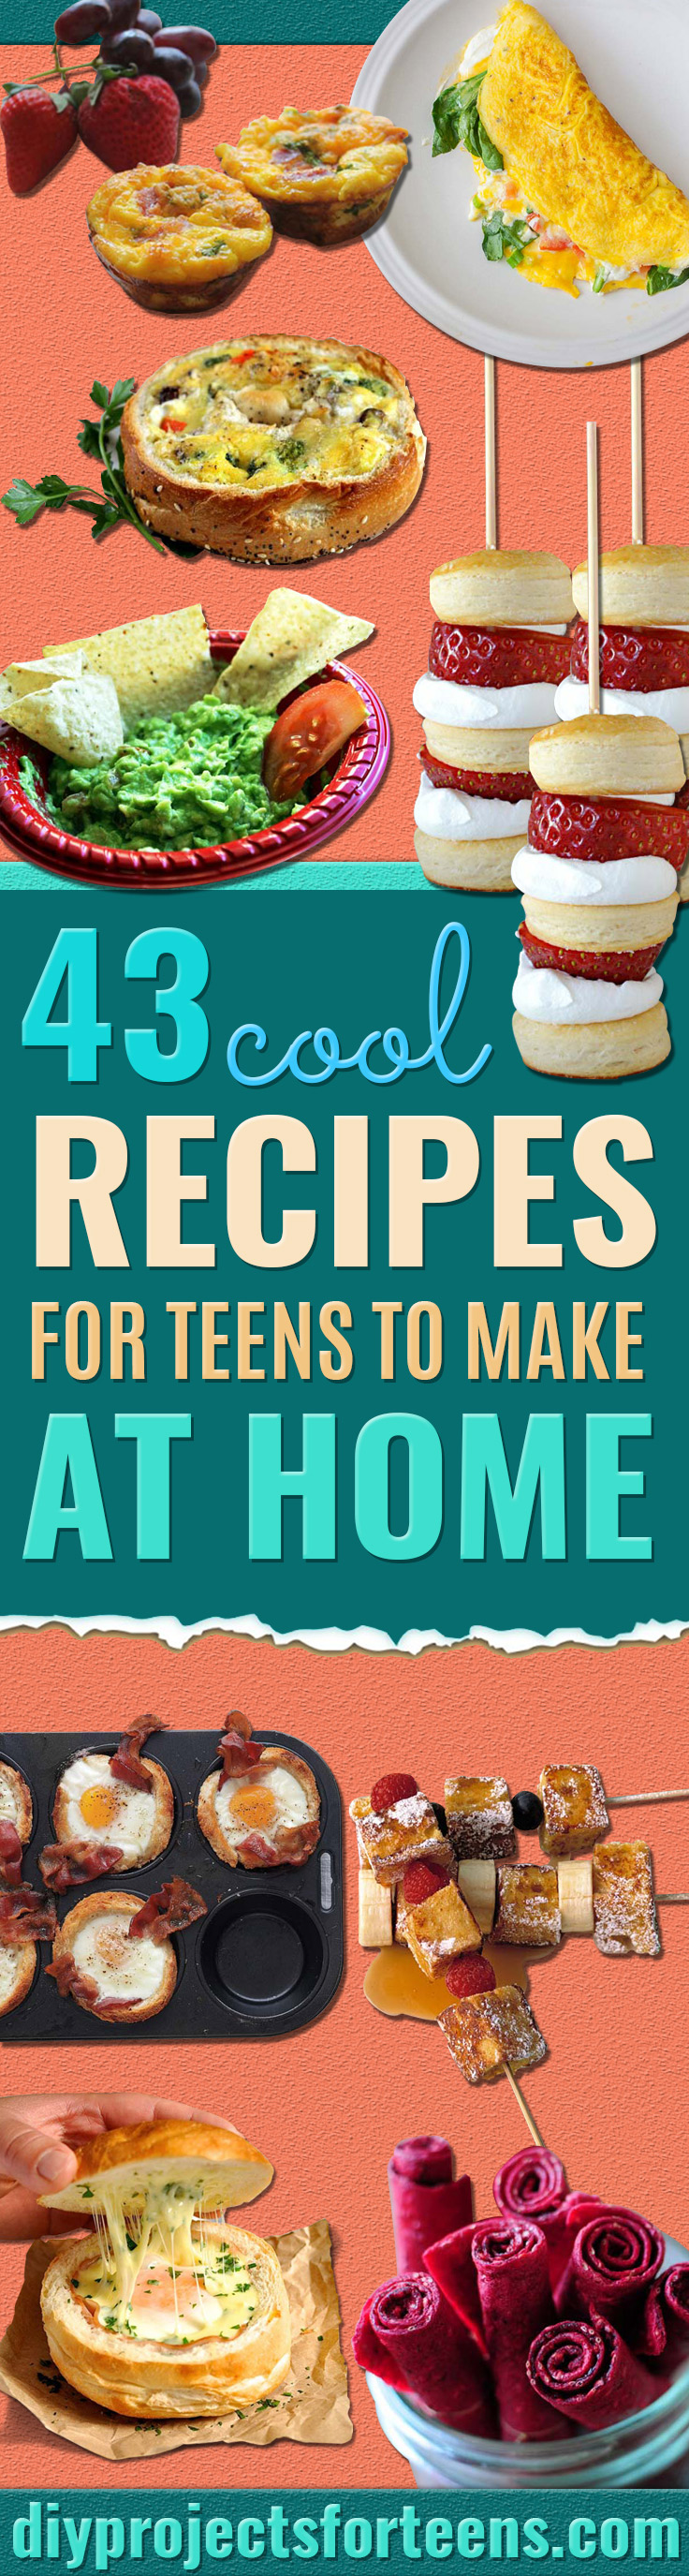 Cool Recipes For Teens To Make At Home Diy Projects For Teens